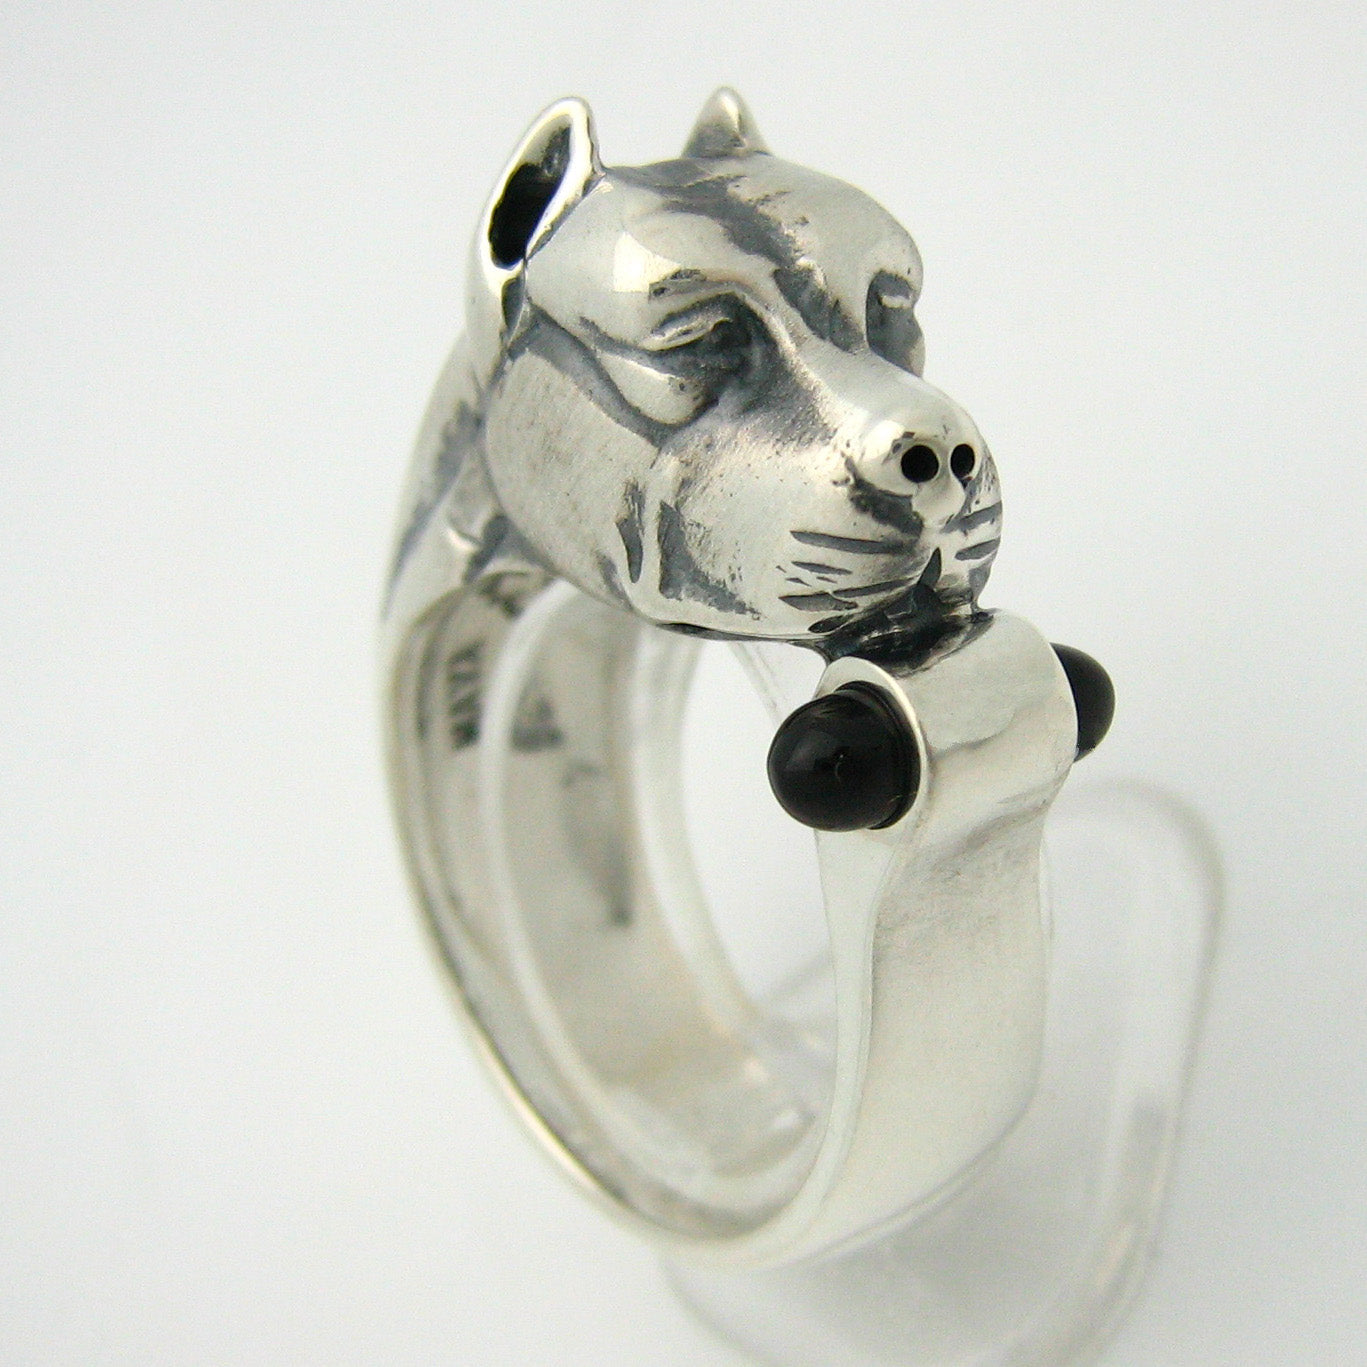 The Black and Silver Pitbull Ring